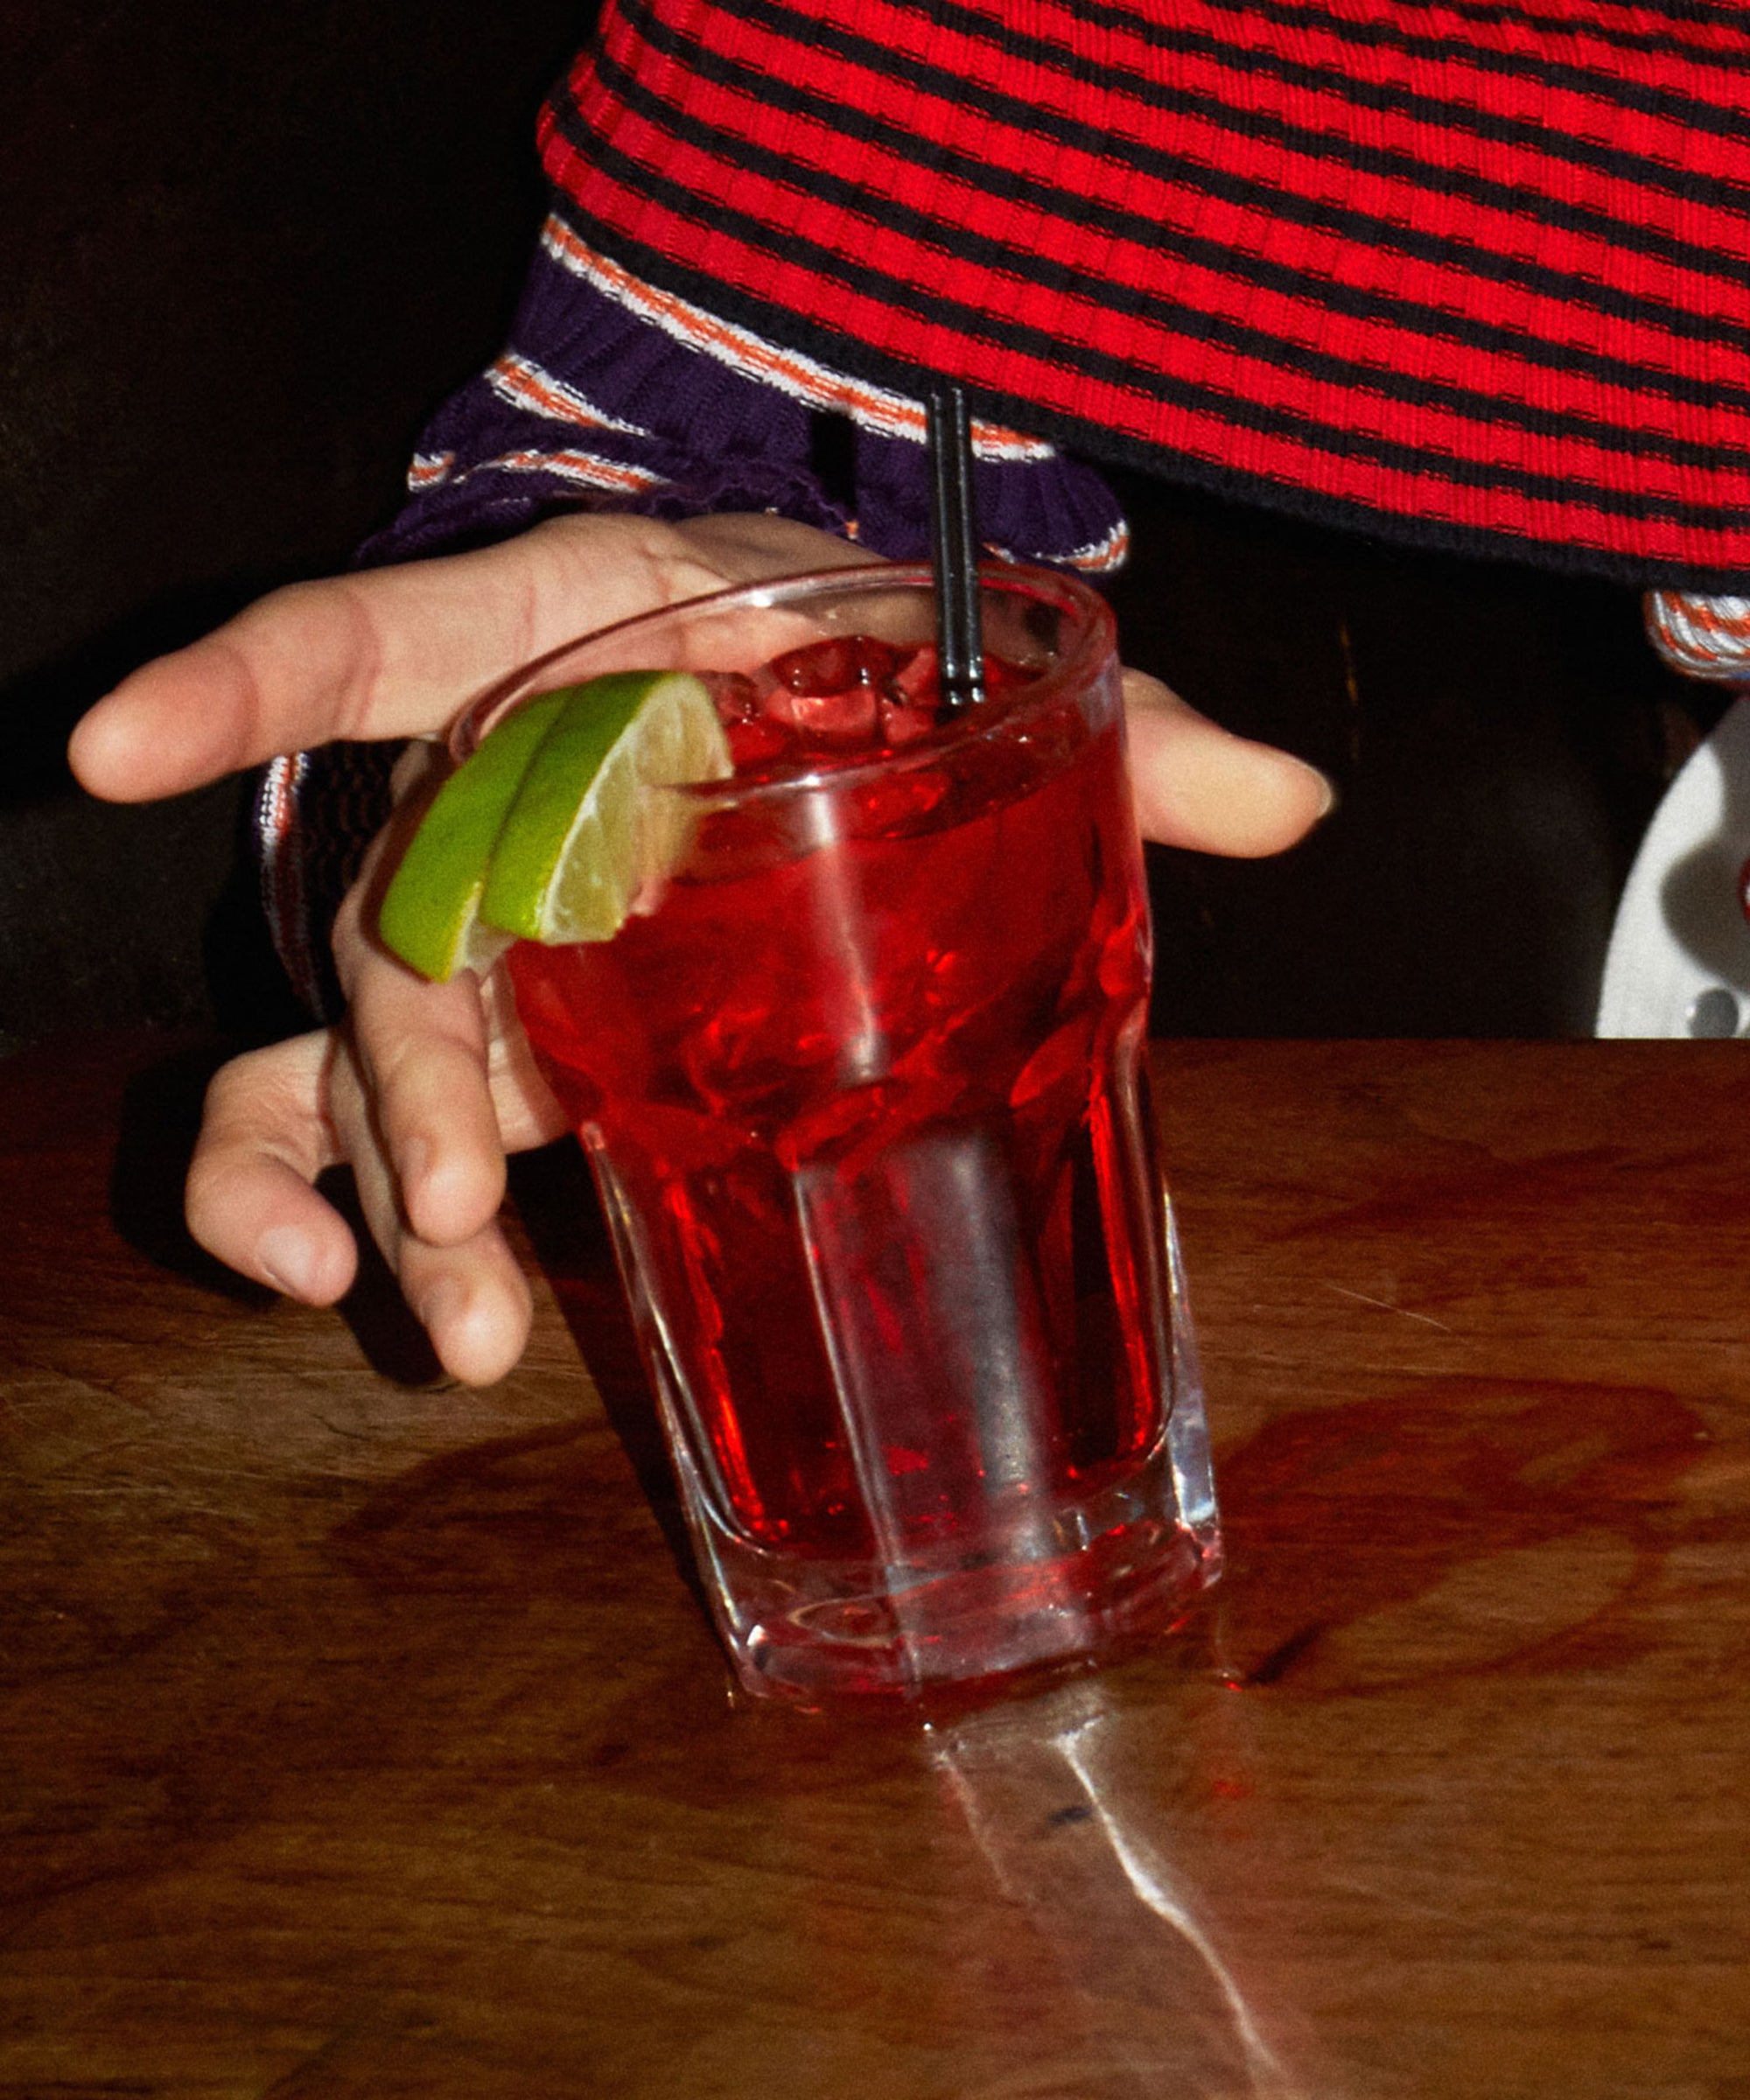 There's A Loophole In Rape Cases Involving Alcohol & New York Is Taking A Stand